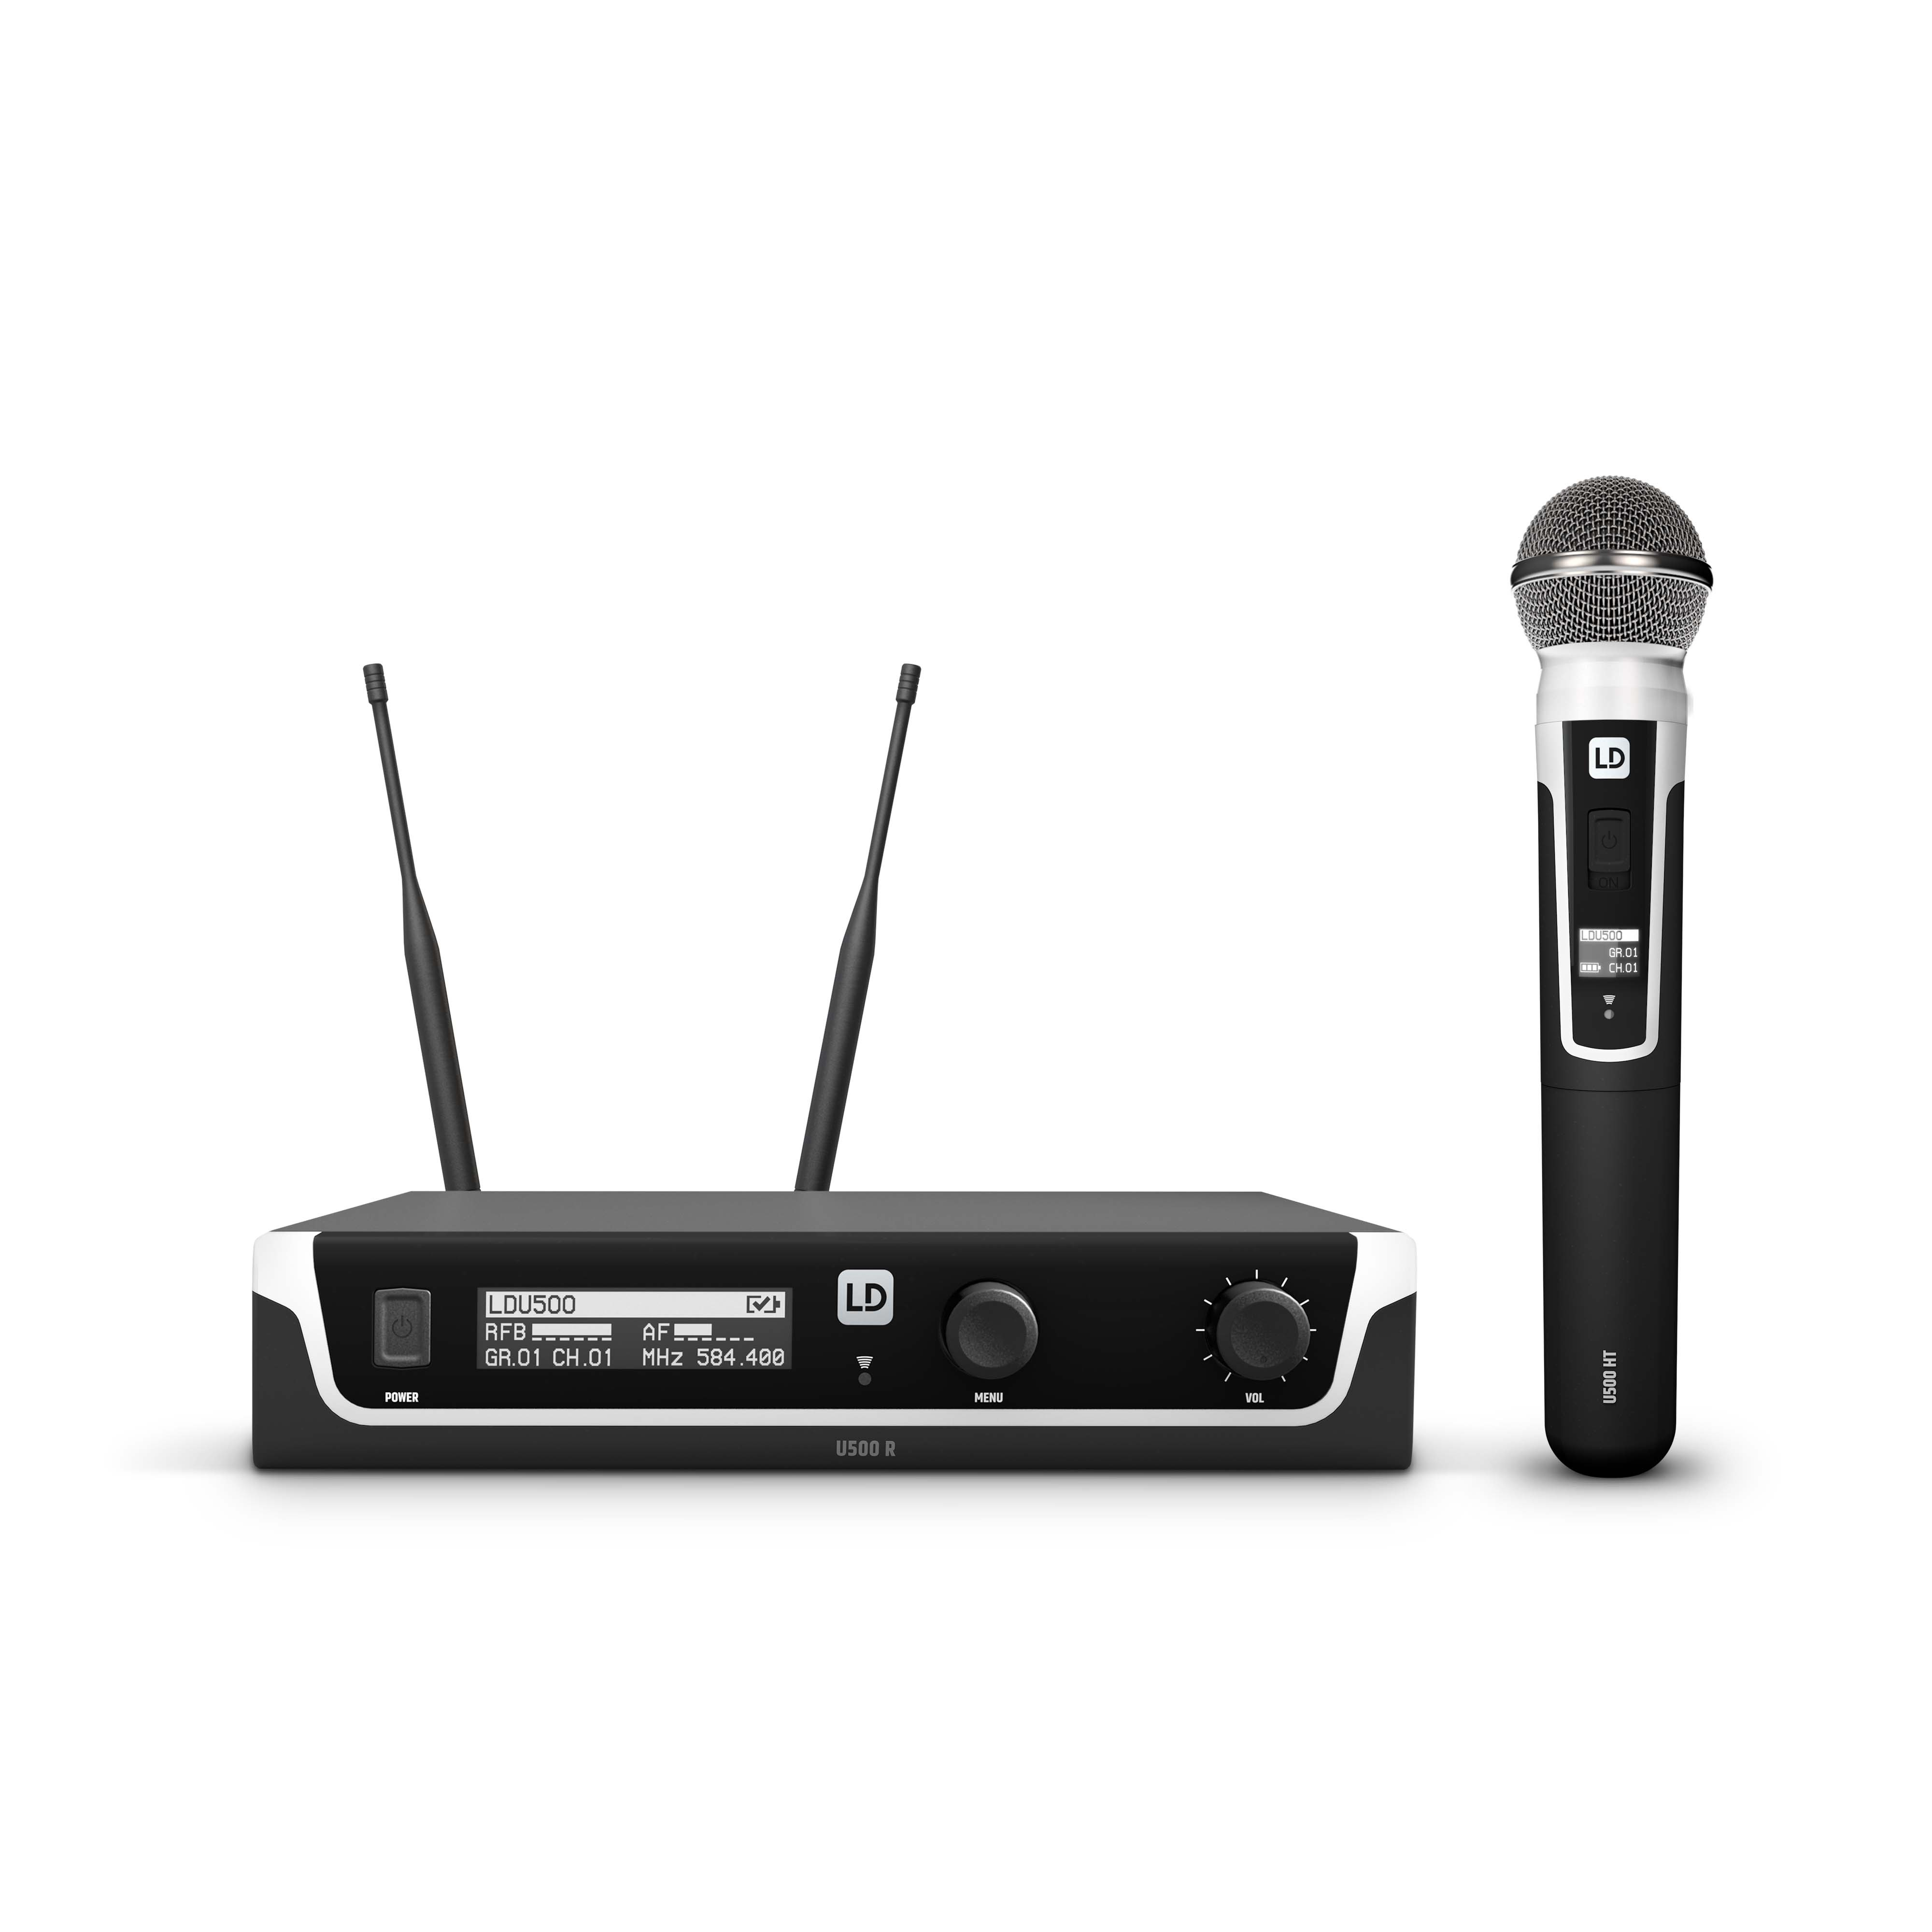 U506 UK HHD Wireless Microphone System with Dynamic Handheld Microphone